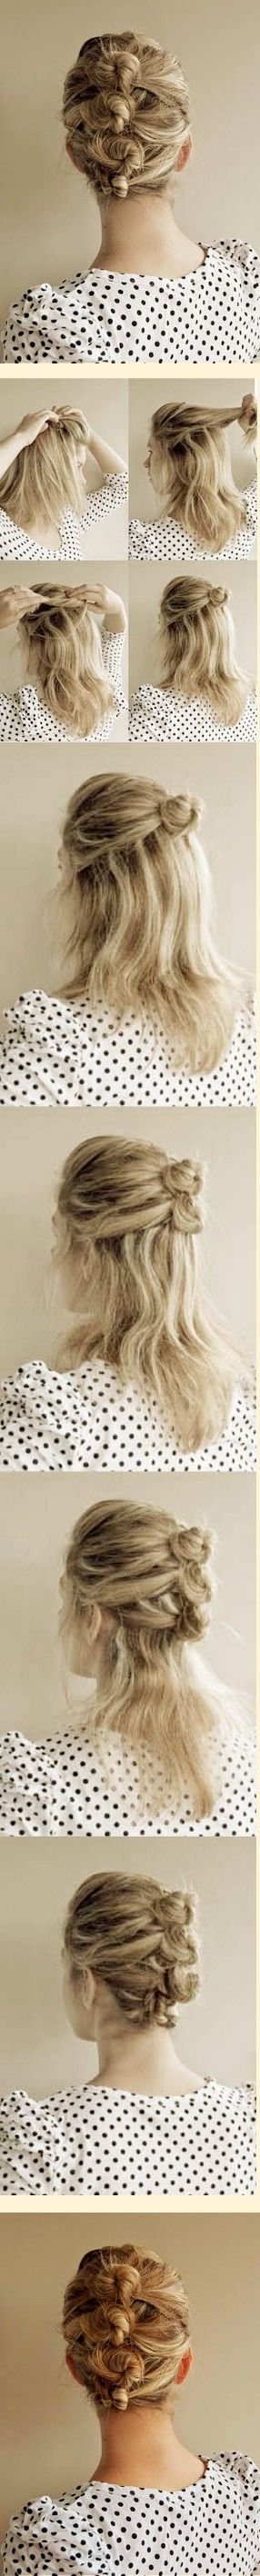 best hair u beauty images on pinterest hair hairstyles and braids